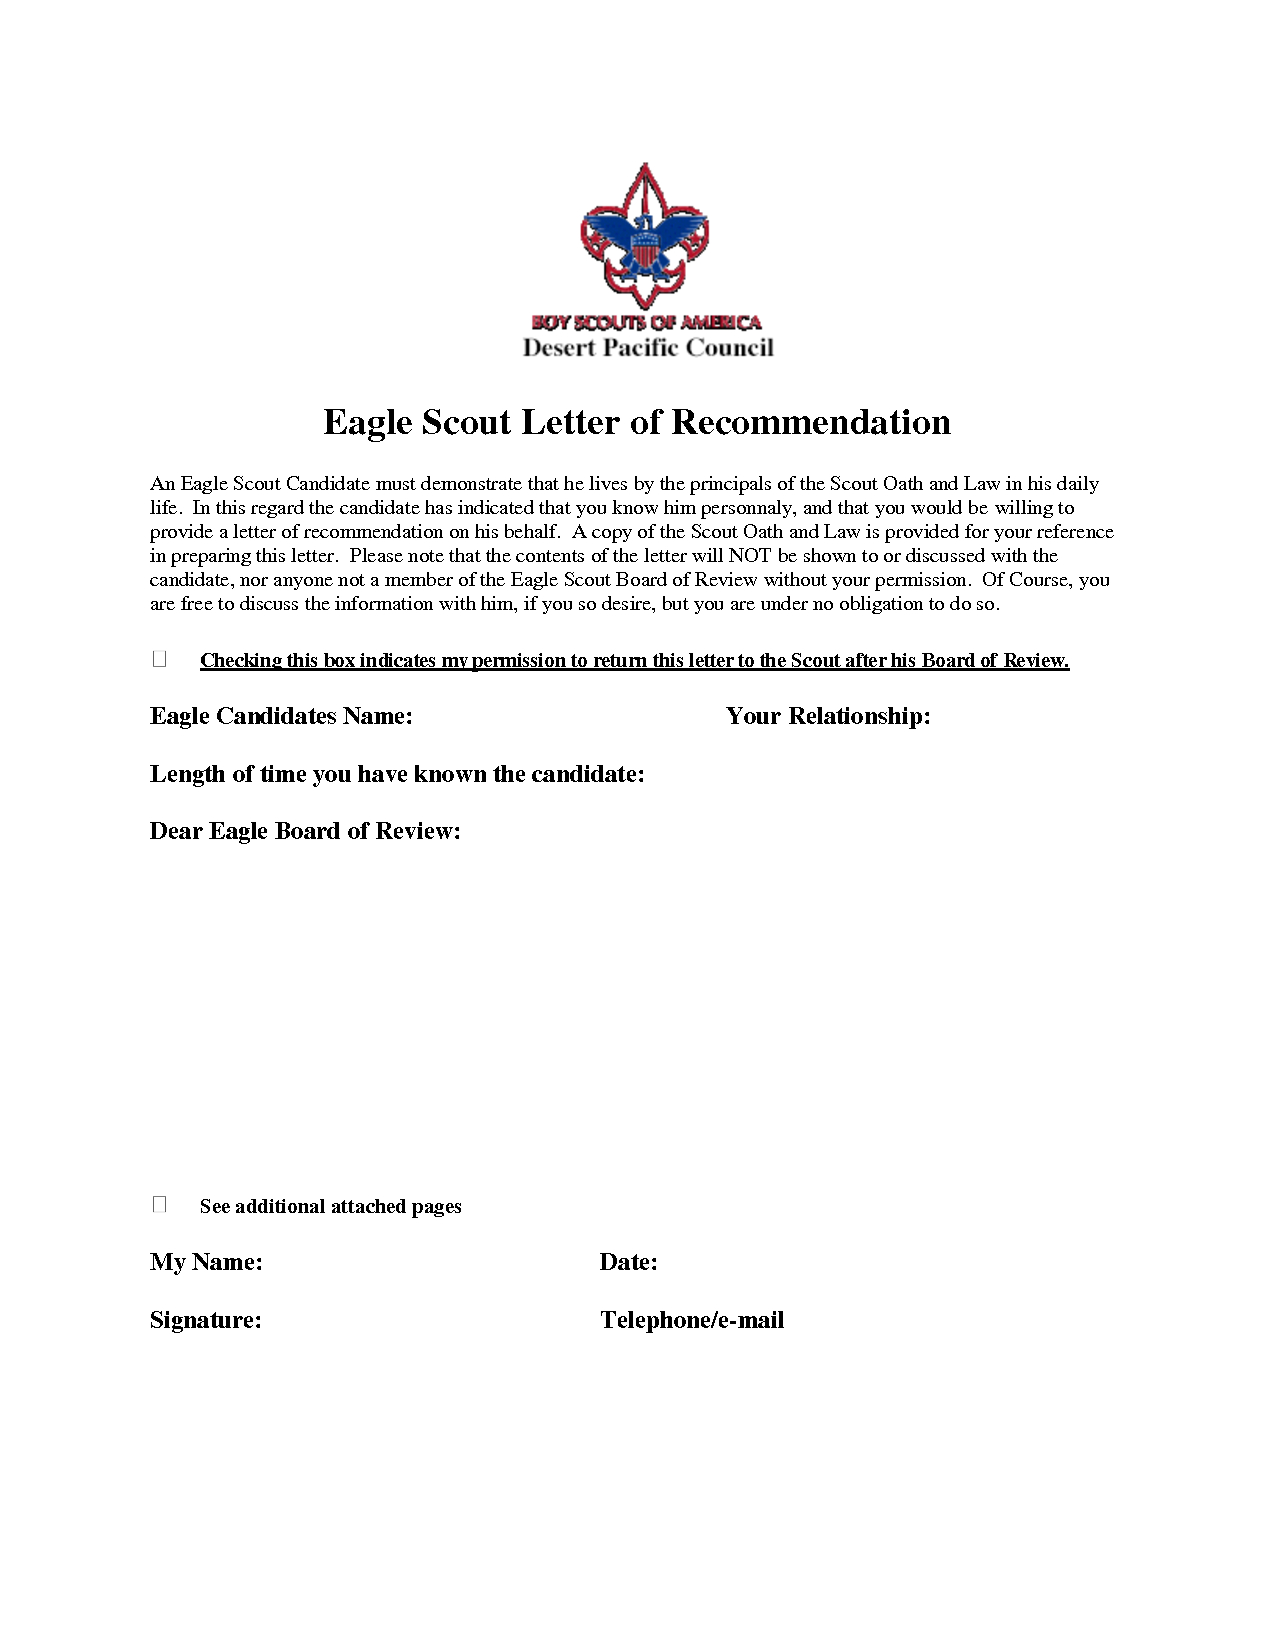 Eagle Scout Donation Letter Template - Eagle Scout Re Mendation Letter Sample